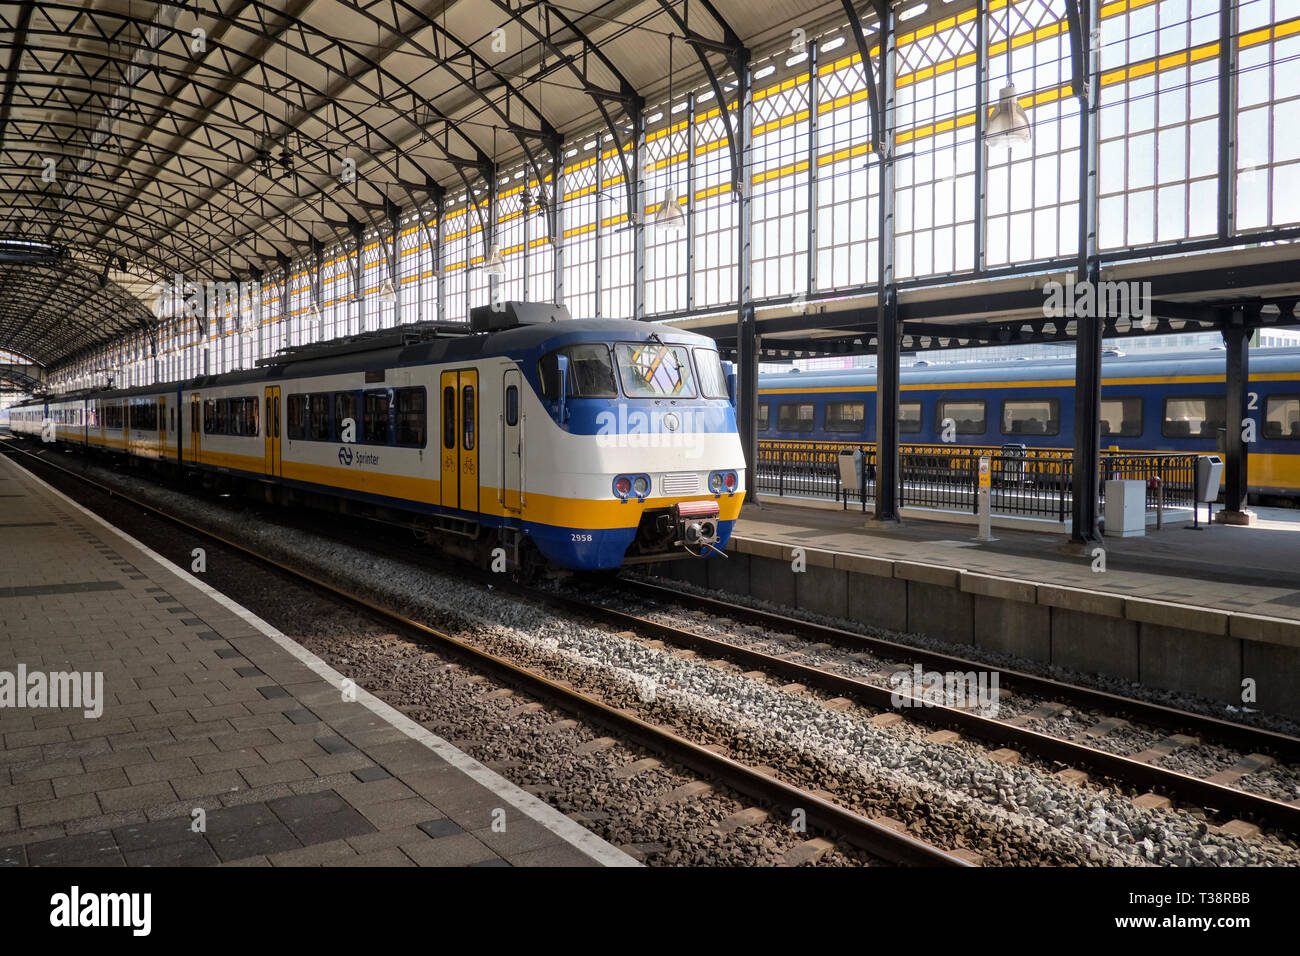 Train on trainstation Hollands Spoor (HS) in The Hague, Netherlands. - Stock Image